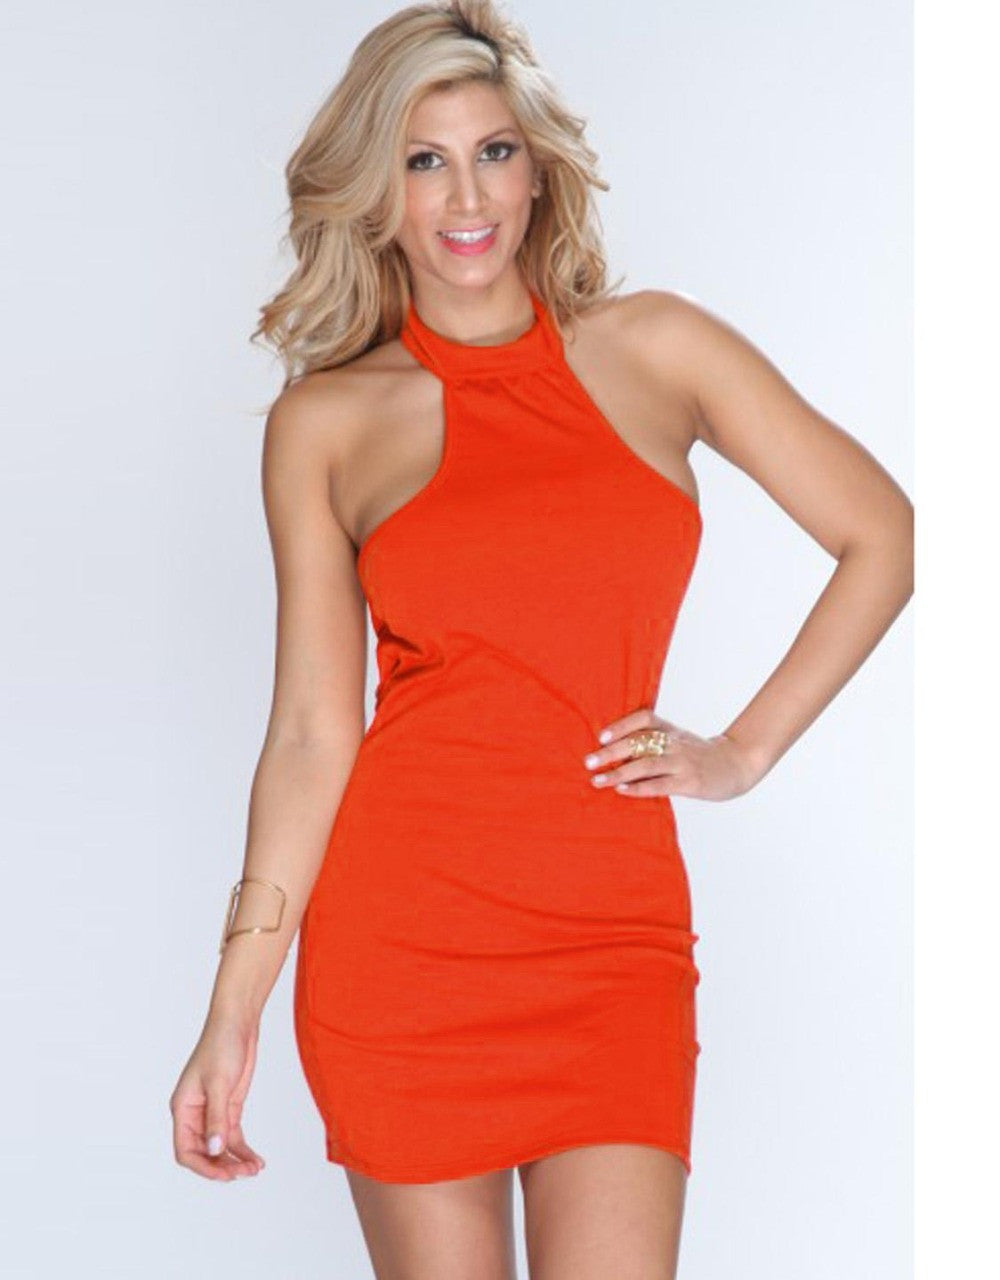 Pink Orange Halter Mini Short Dress Bodycon Dress - Sins & Temptations